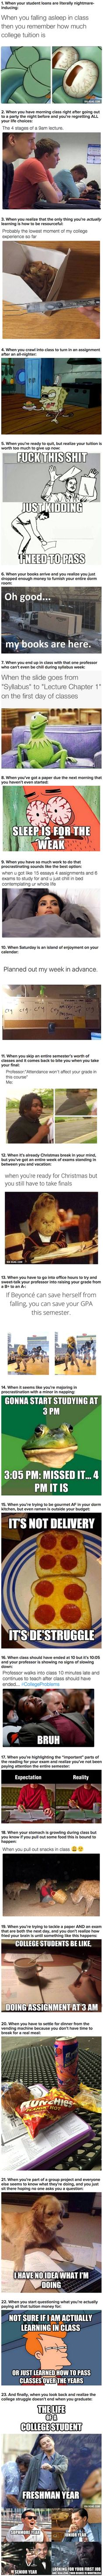 23 Pictures Every College Student Will Understand - 9GAG